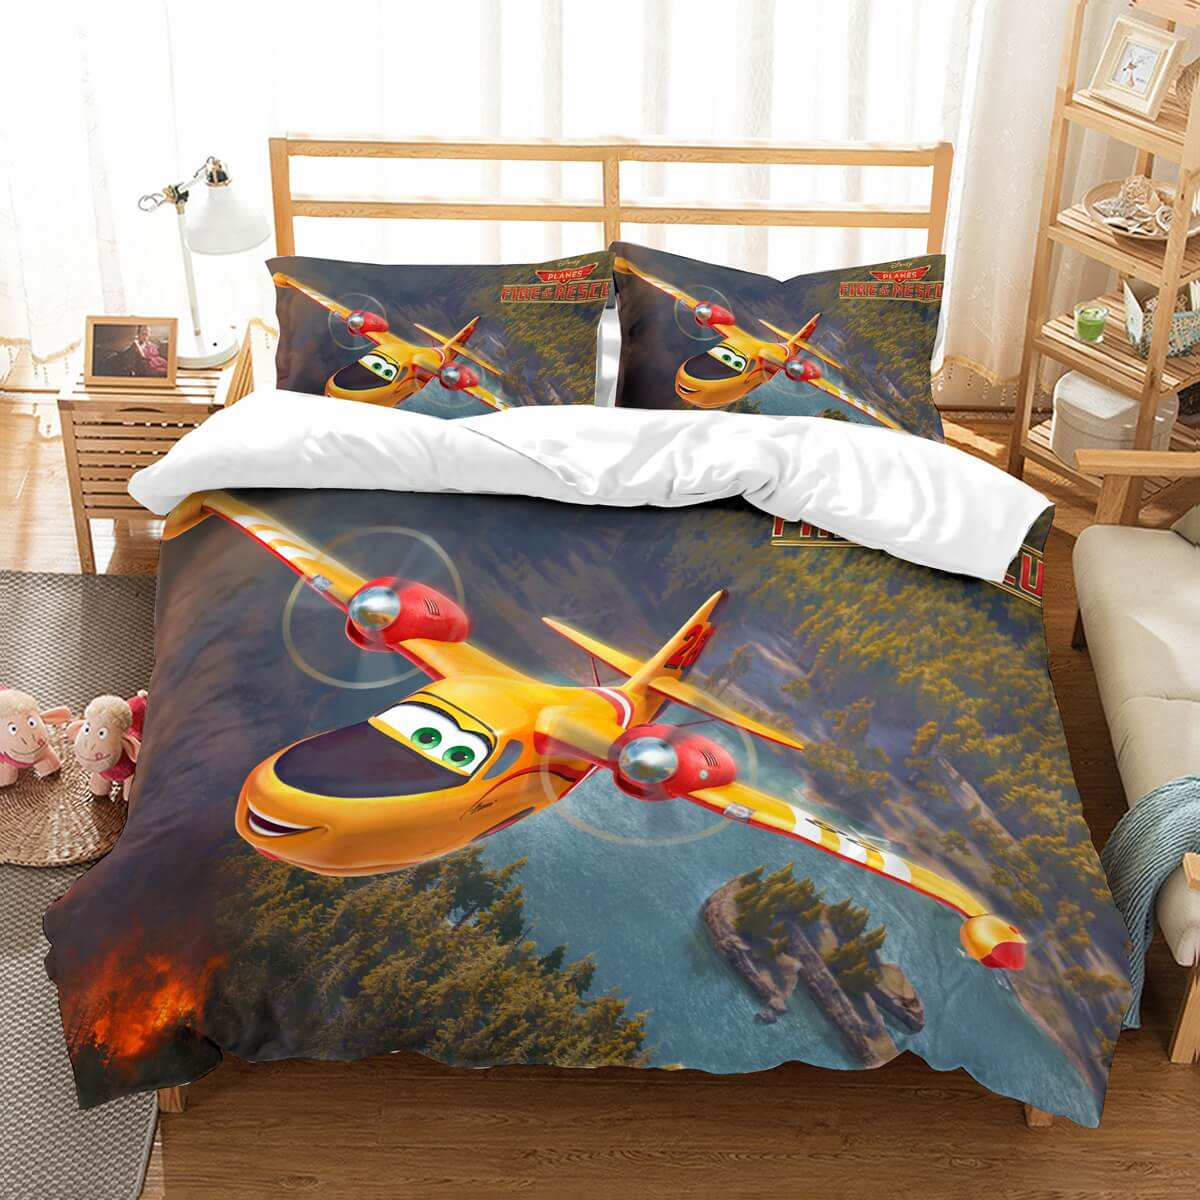 3D Customize PLANES FIRE & RESCUE Bedding Set Duvet Cover Set Bedroom Set Bedlinen